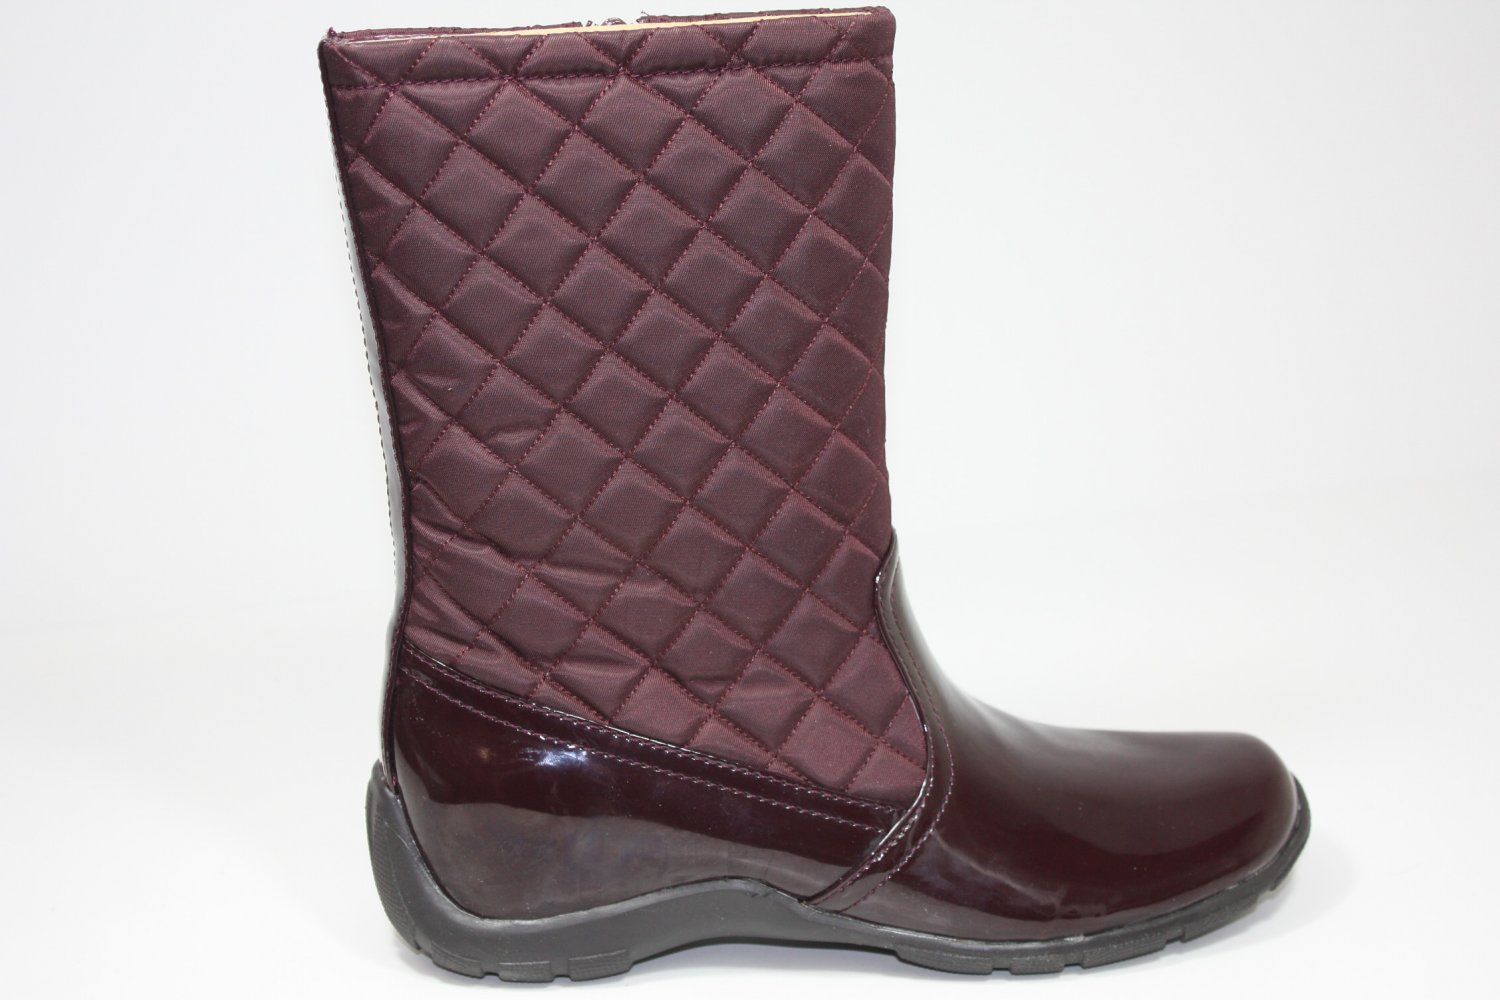 Naturalizer Vass-Bordo Quilted Boots Burgundy Shoes US